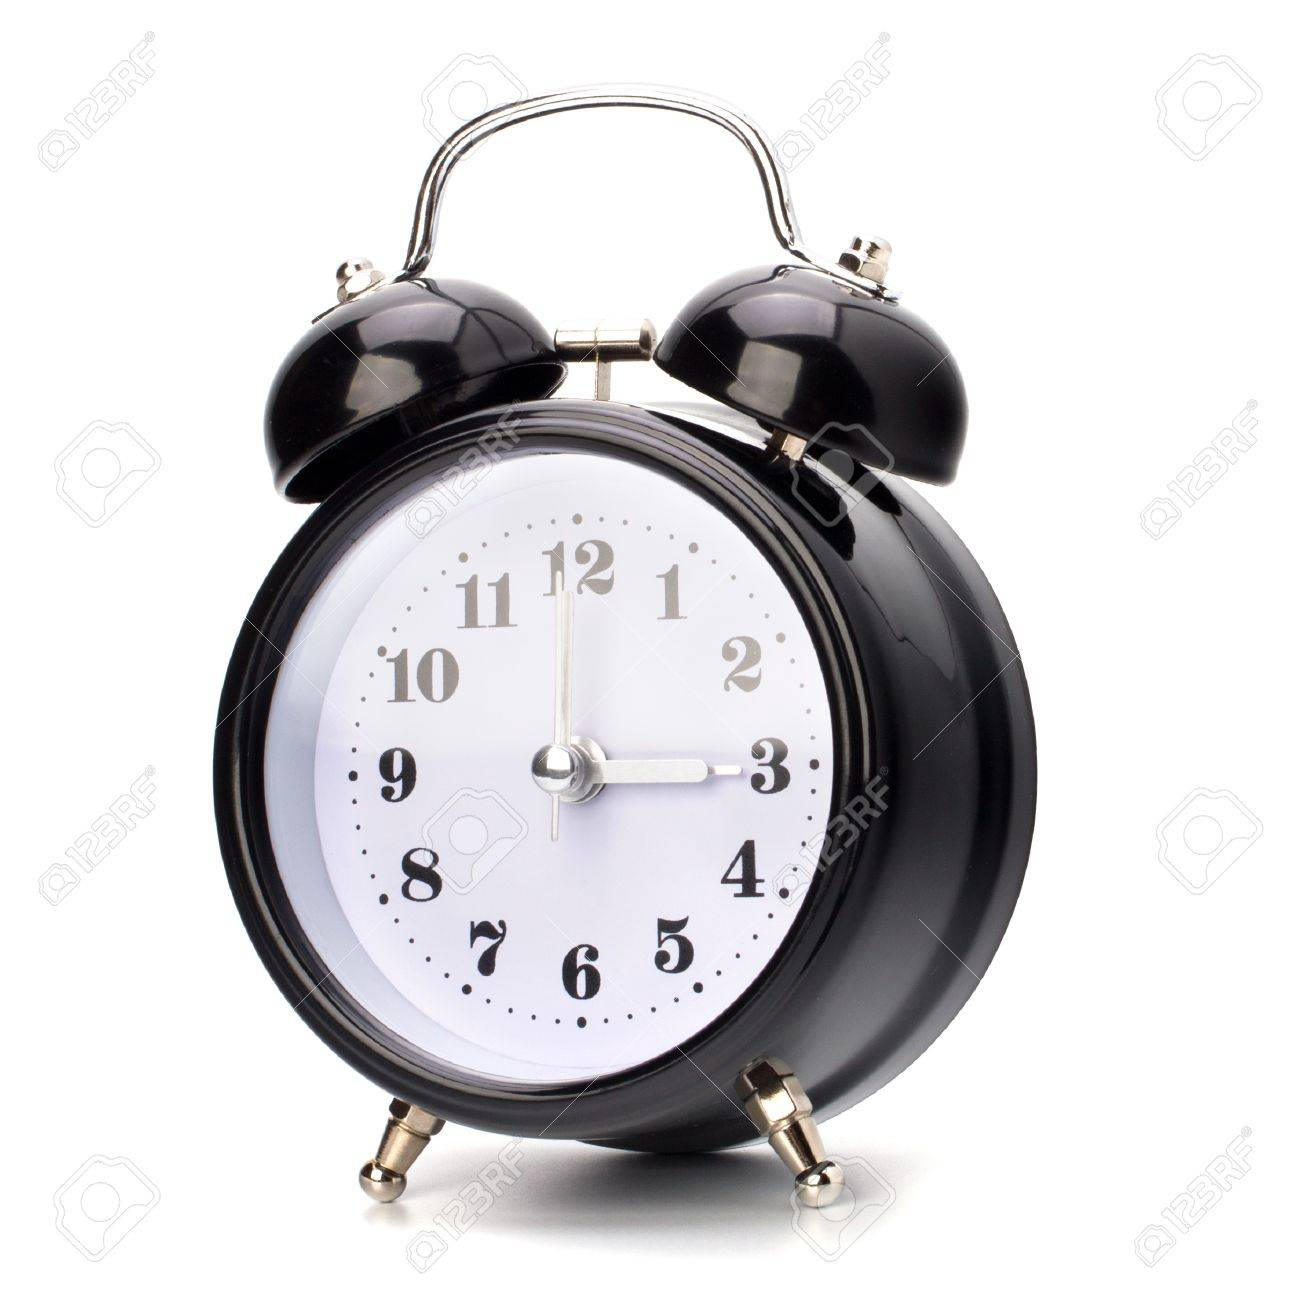 Black alarm clock isolated on white background Stock Photo - 9054287